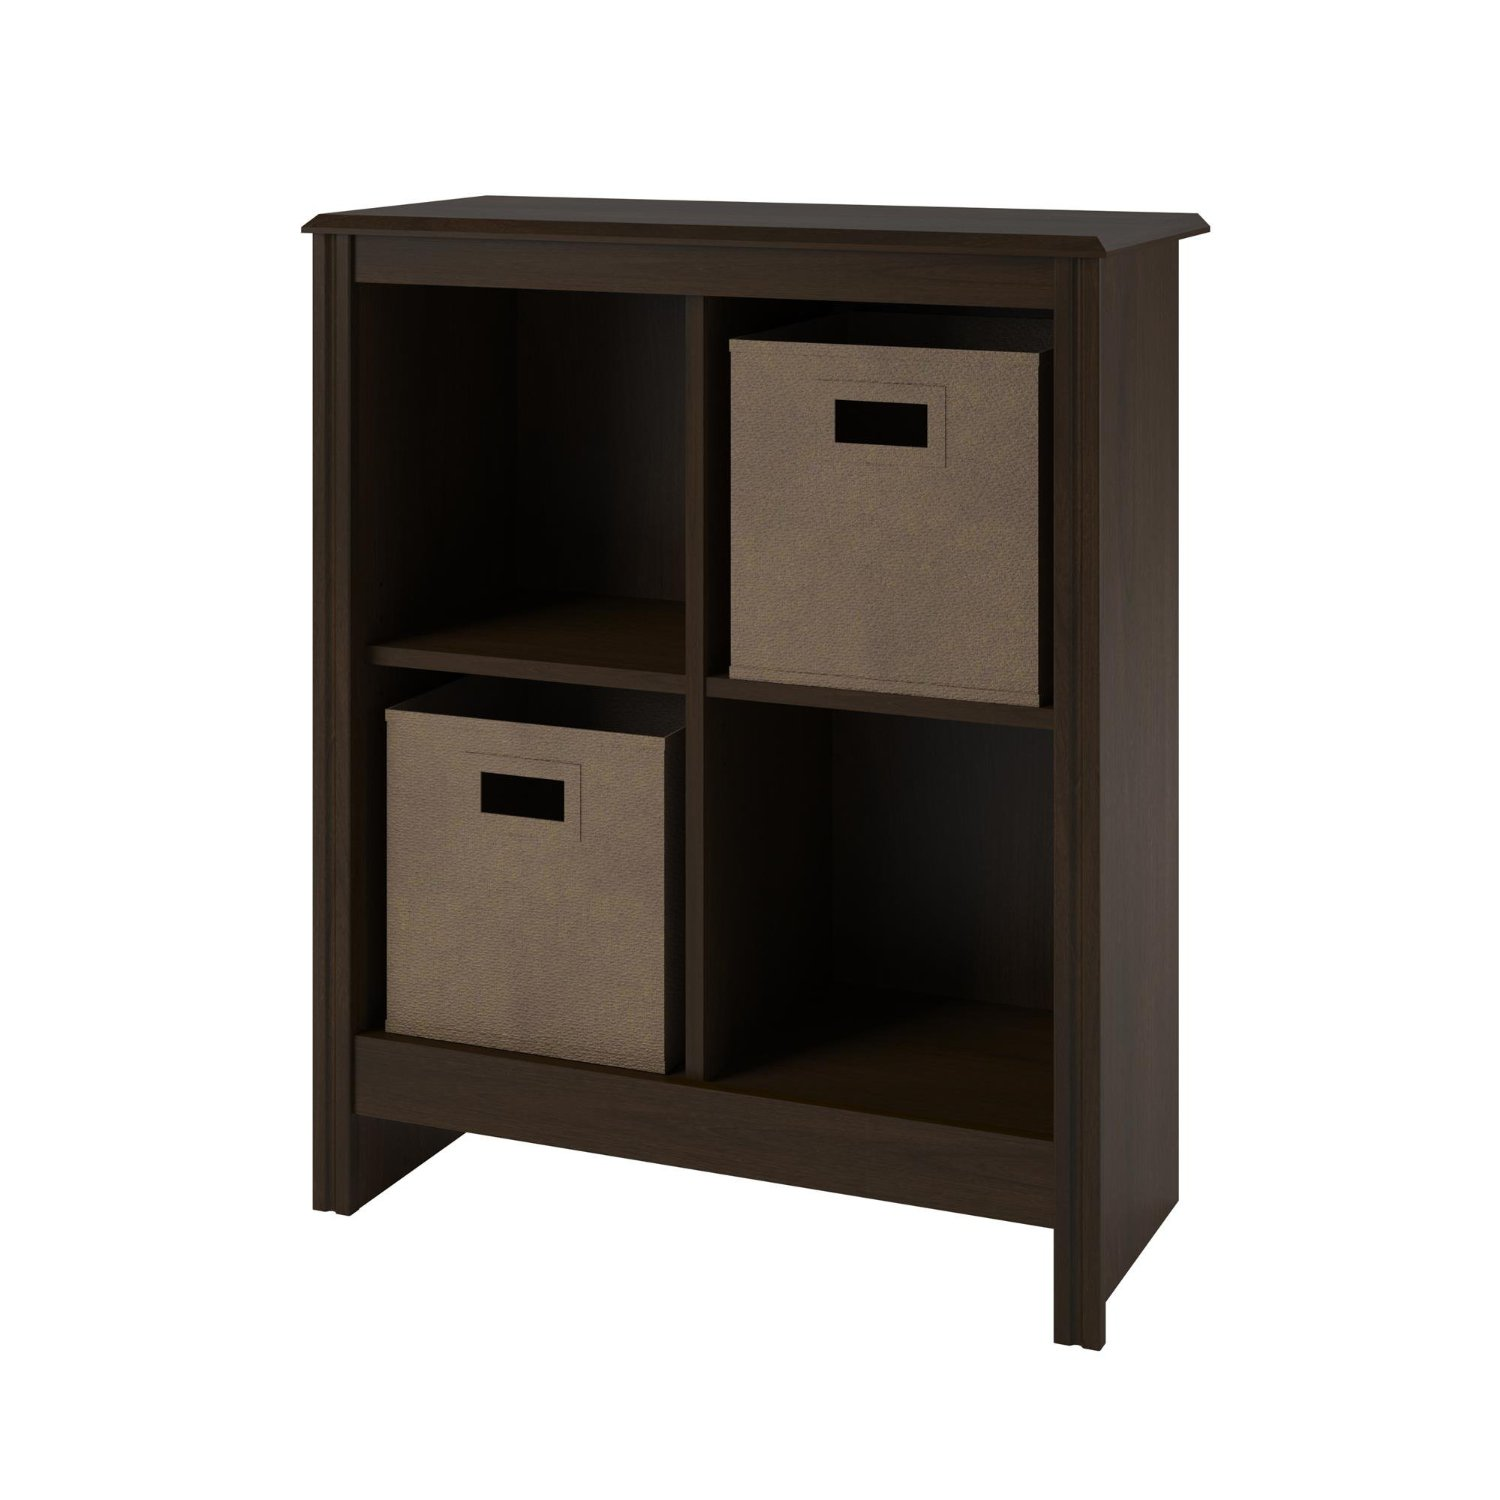 Get Quotations · Altra 4-Cube Storage Cubby Bookcase with 2 Storage Bins Resort Cherry Finish  sc 1 st  Alibaba & Cheap 9 Cube Storage Cubby find 9 Cube Storage Cubby deals on line ...